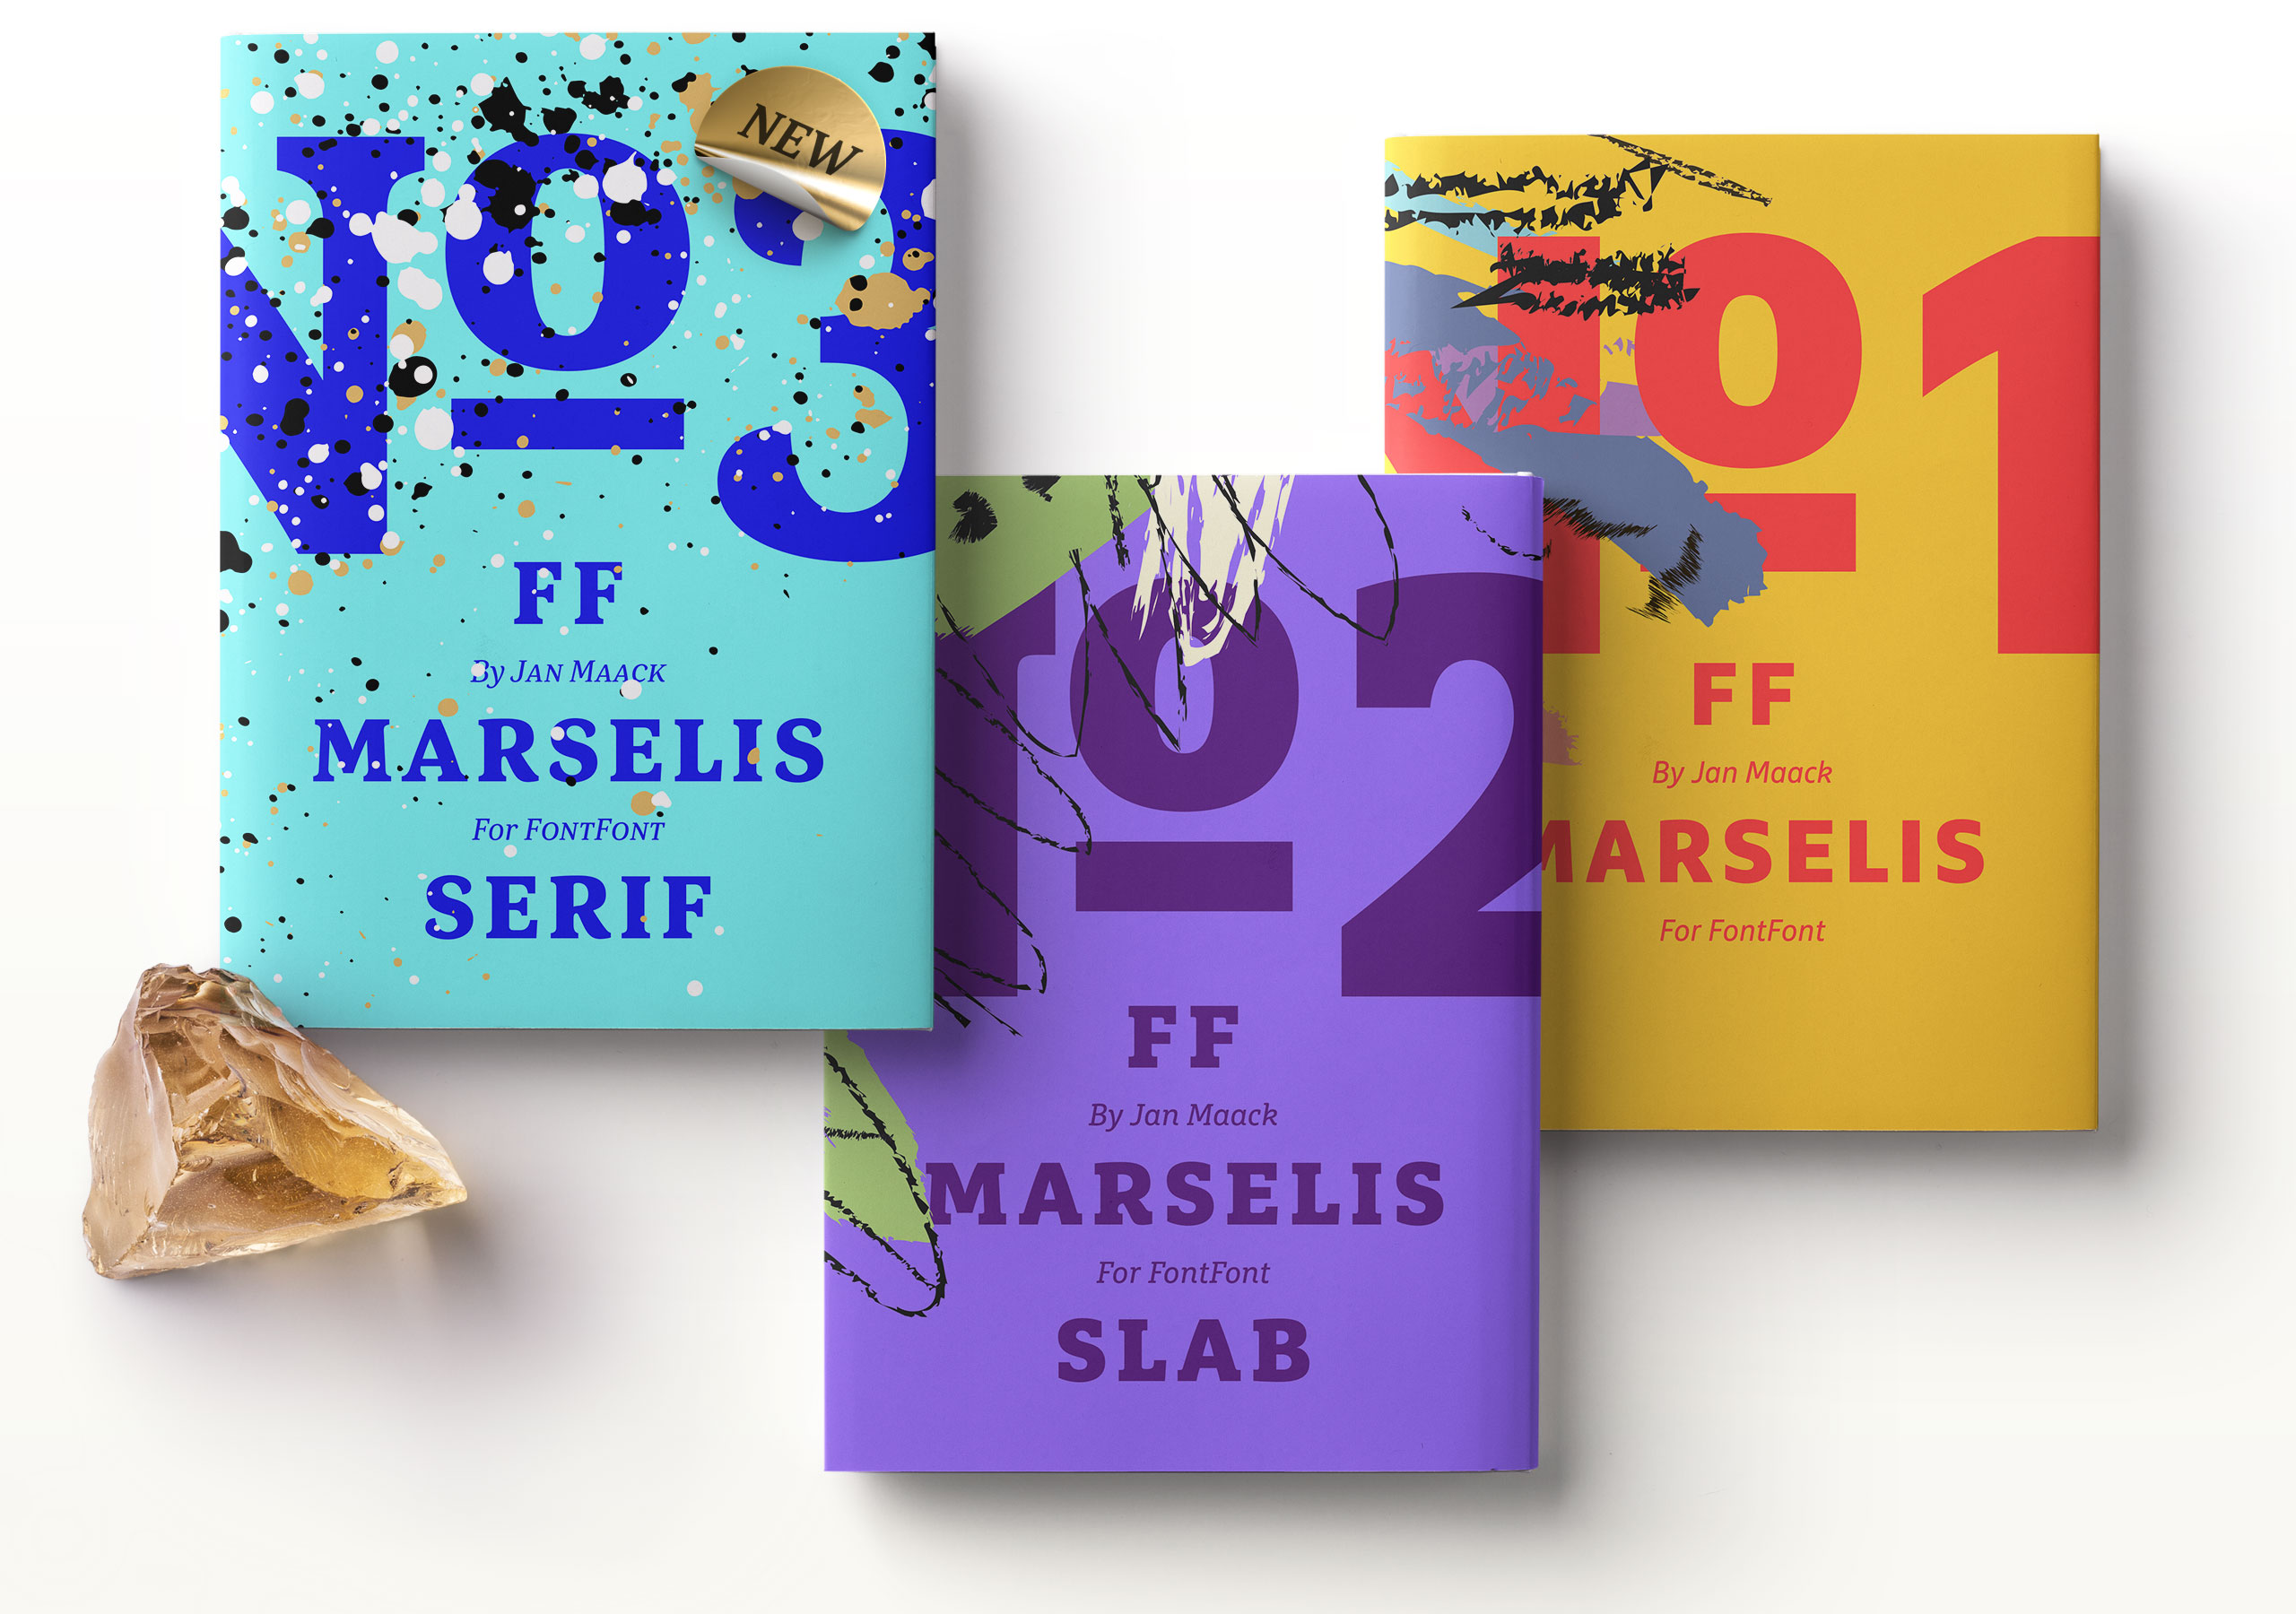 Fictional use case for FF Marselis Serif by Alexandra Schwarzwald